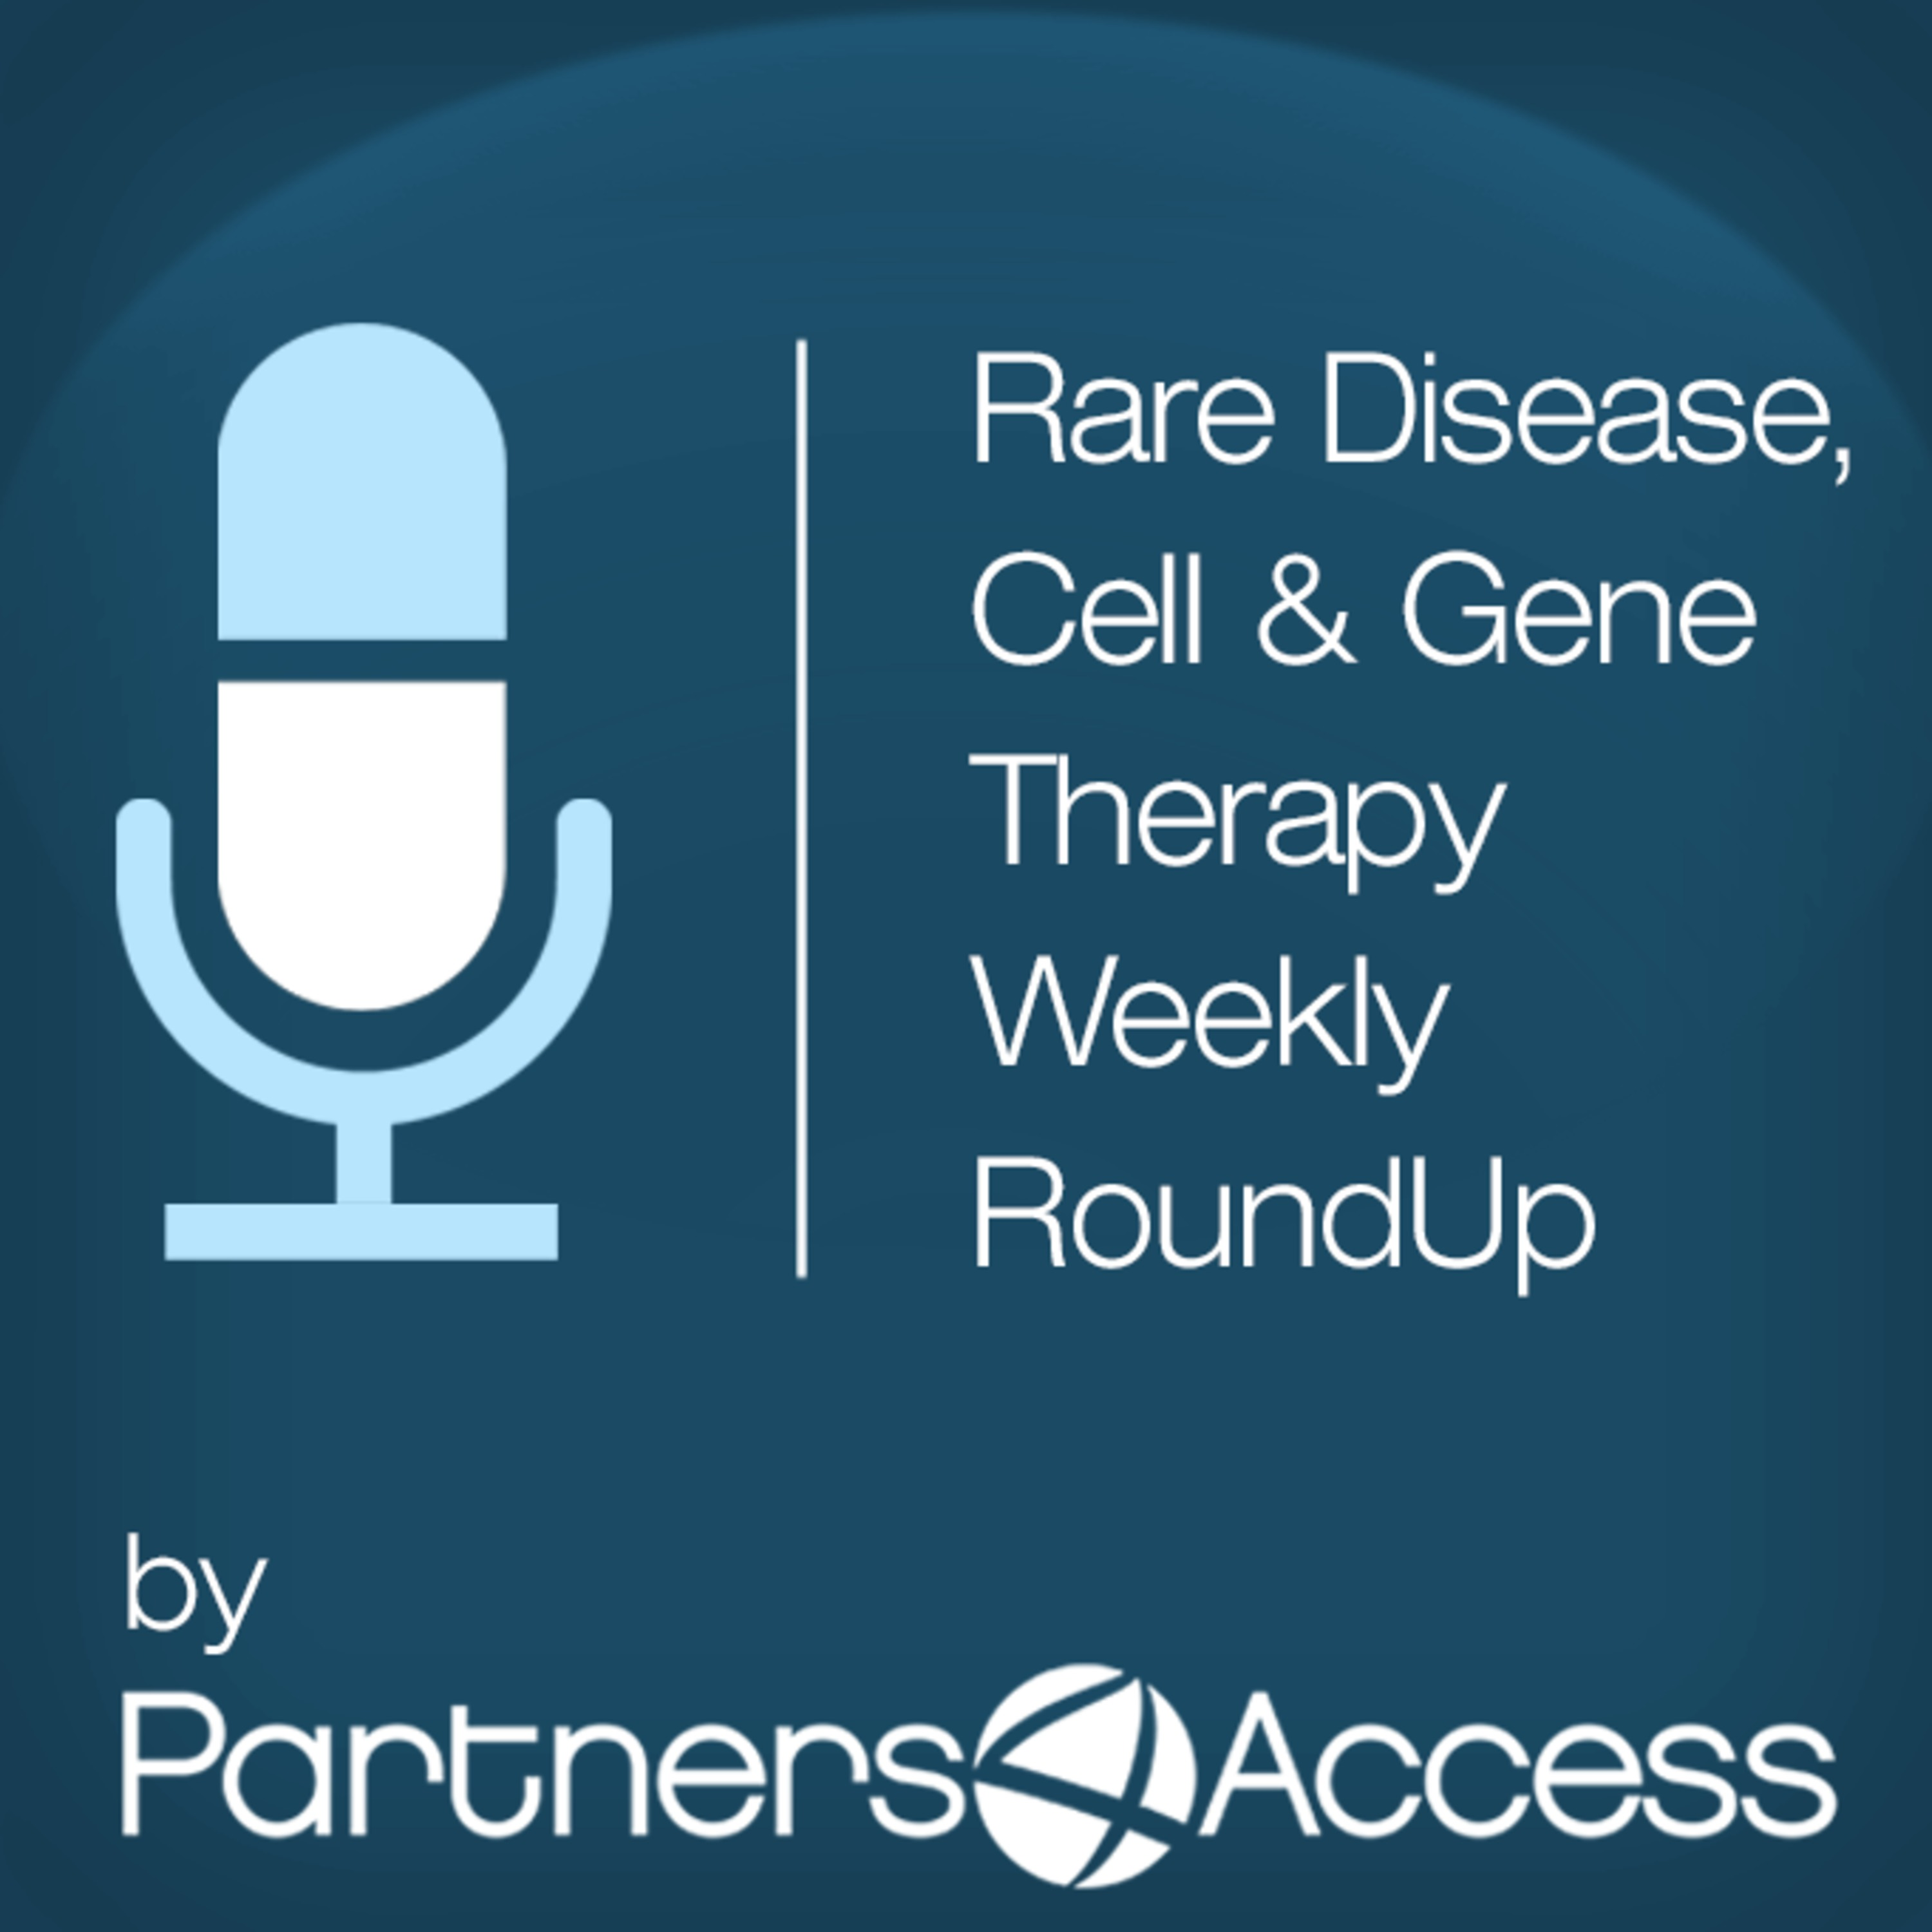 Rare Disease, Cell & Gene Therapy Weekly RoundUp